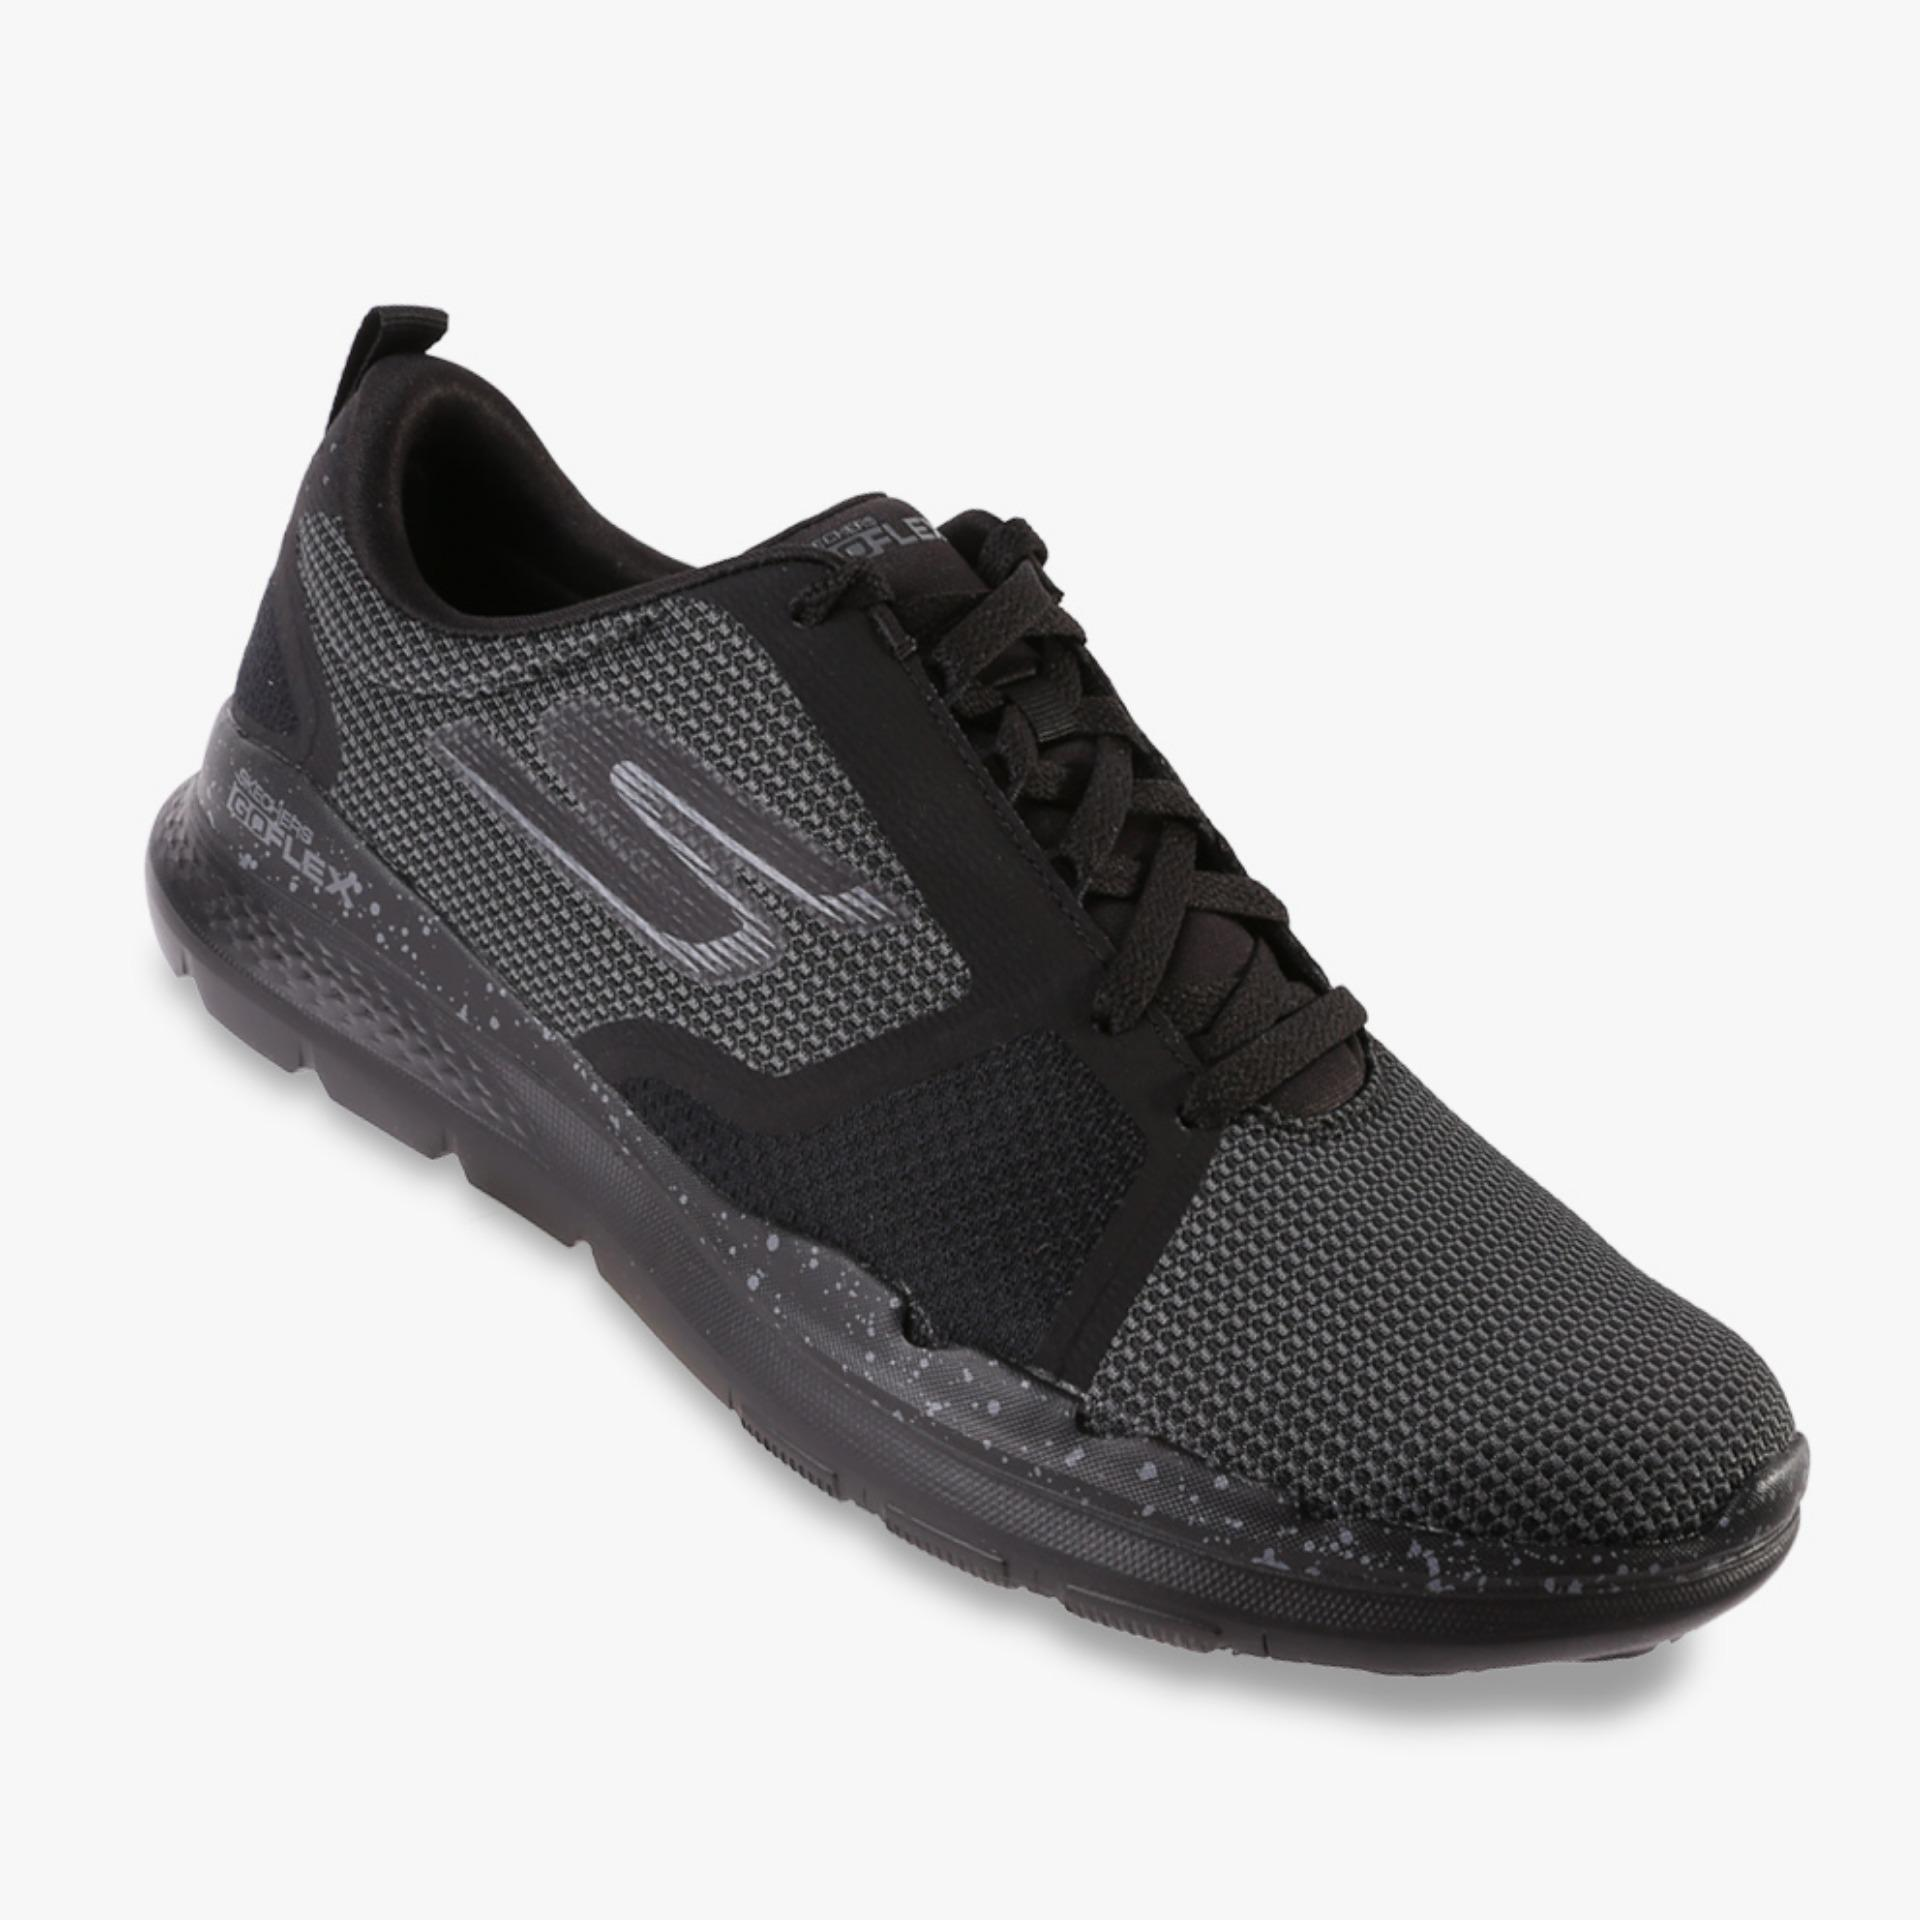 Toko Skechers Go Flex Train Men S Sneakers Hitam Termurah Indonesia